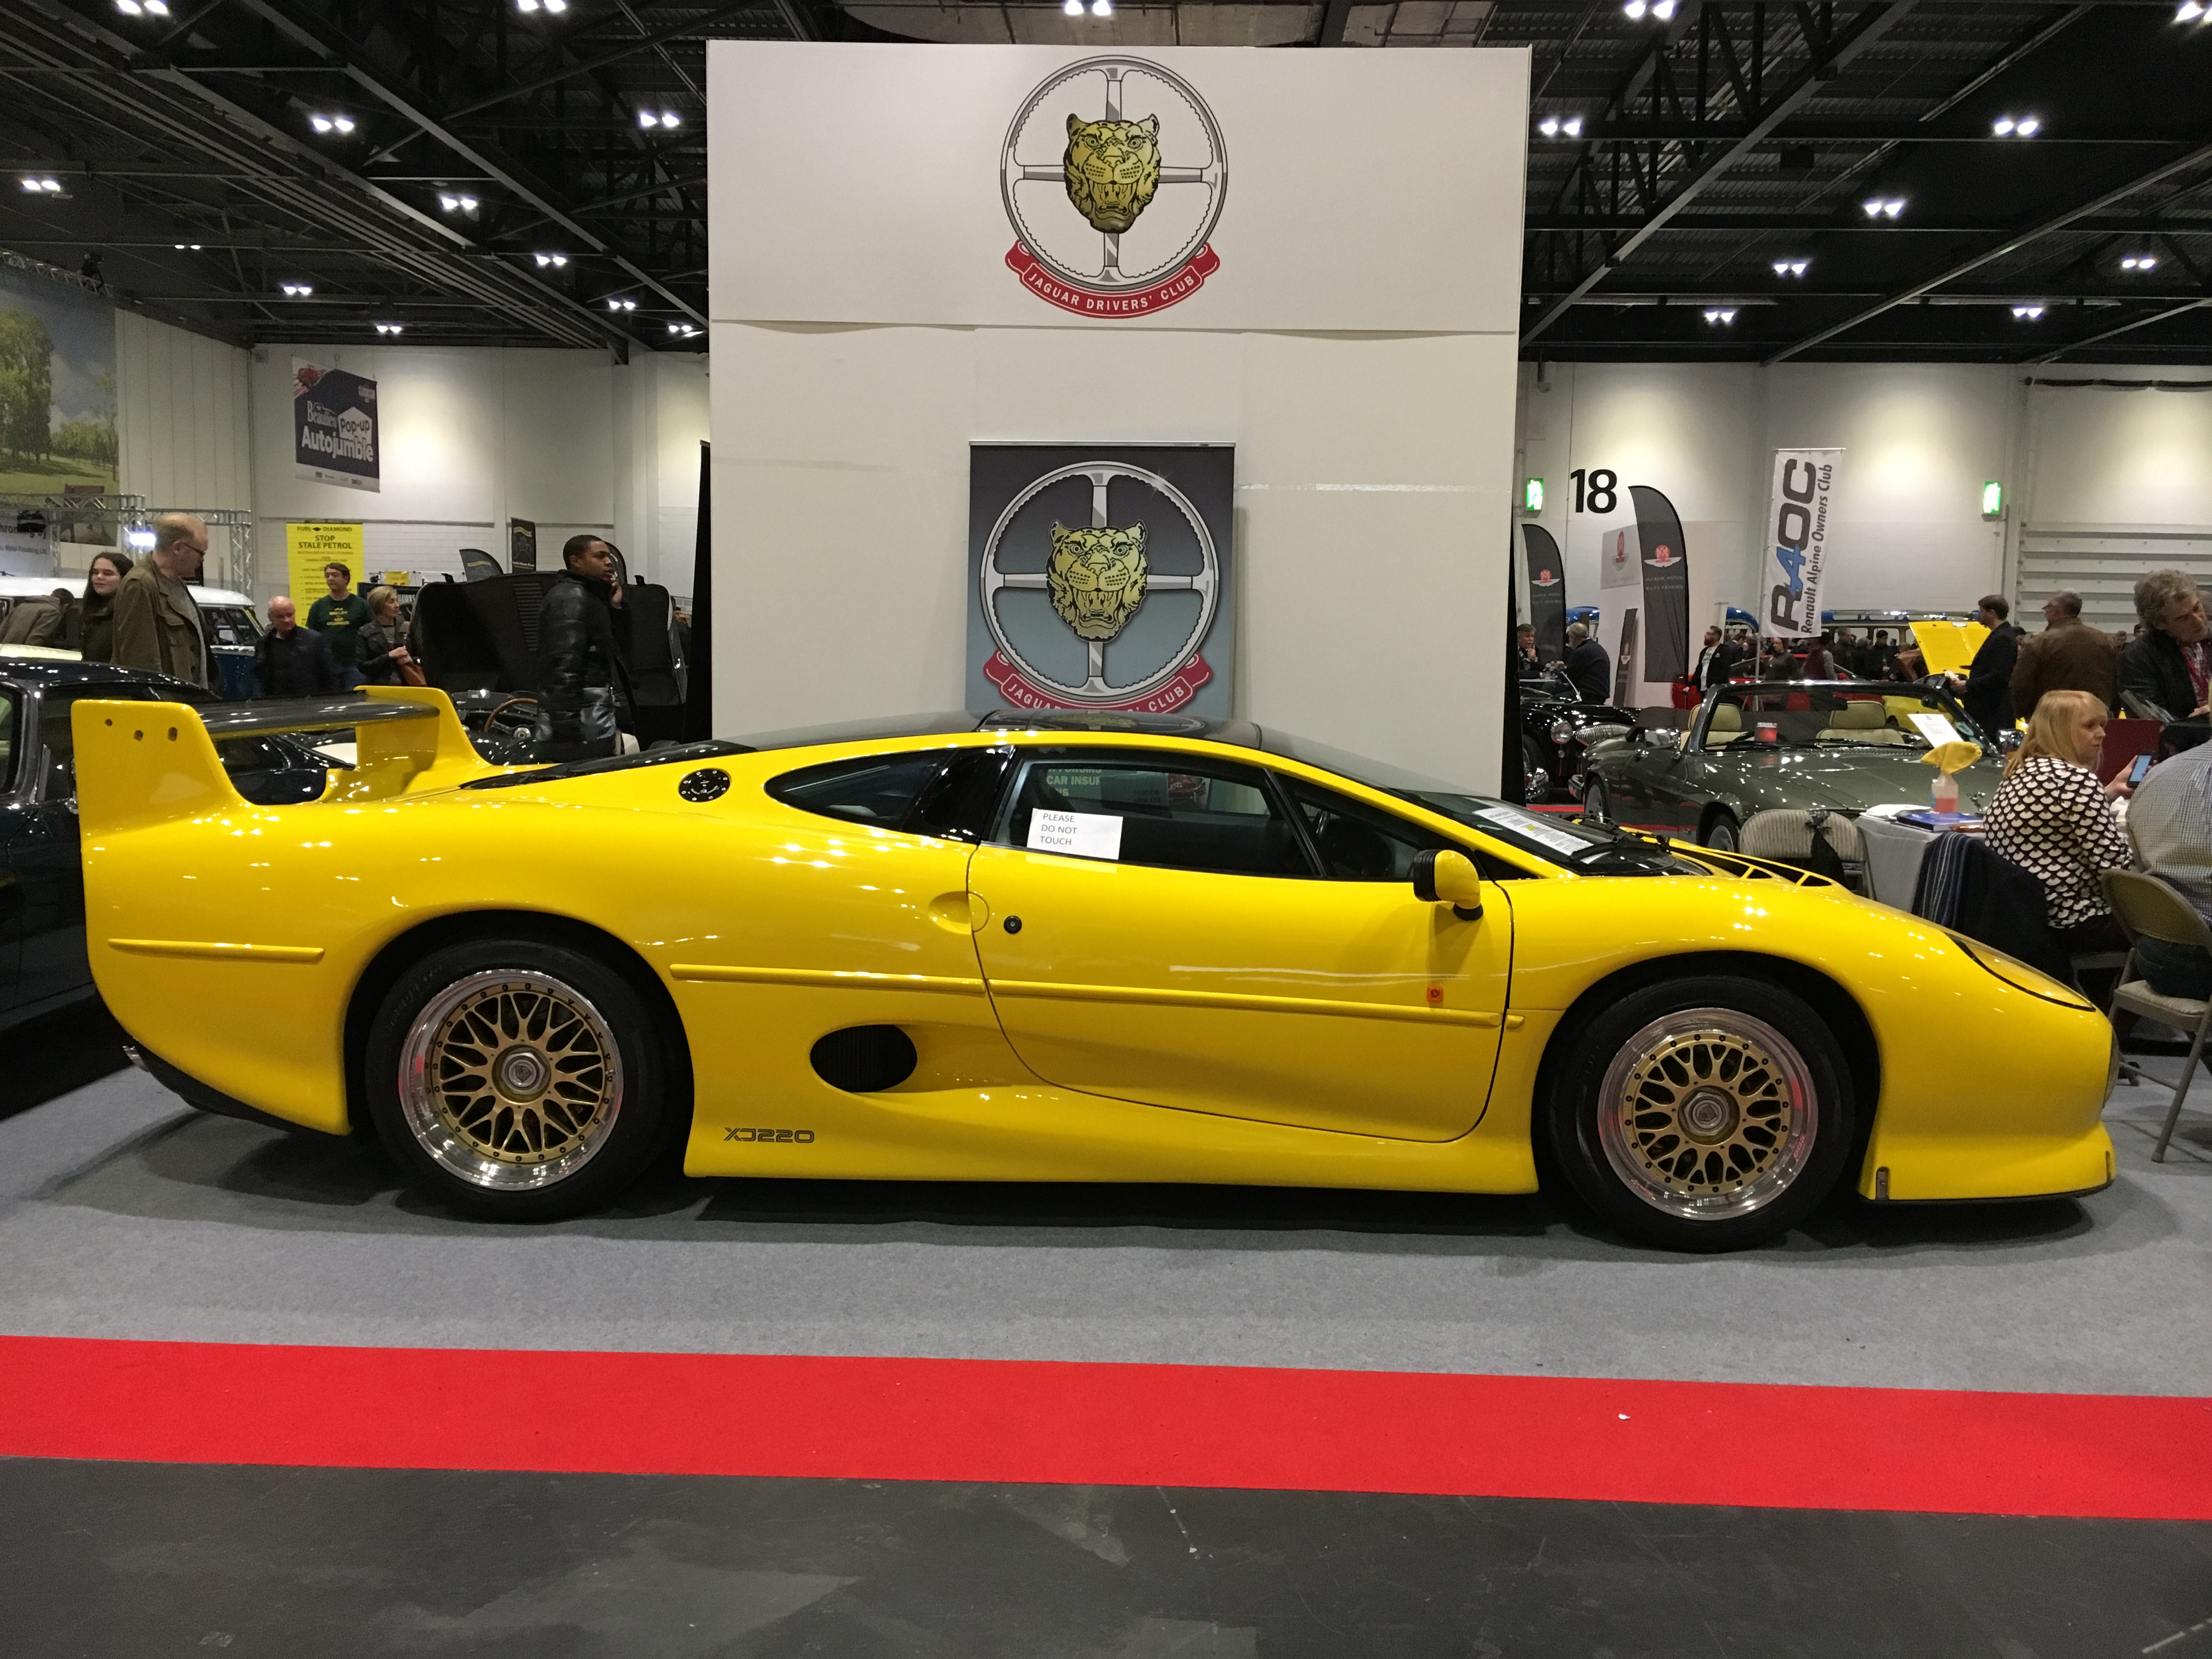 Jaguar Xj220 For Sale >> Our Top 10 cars at the 2017 London Classic Car Show | My ...